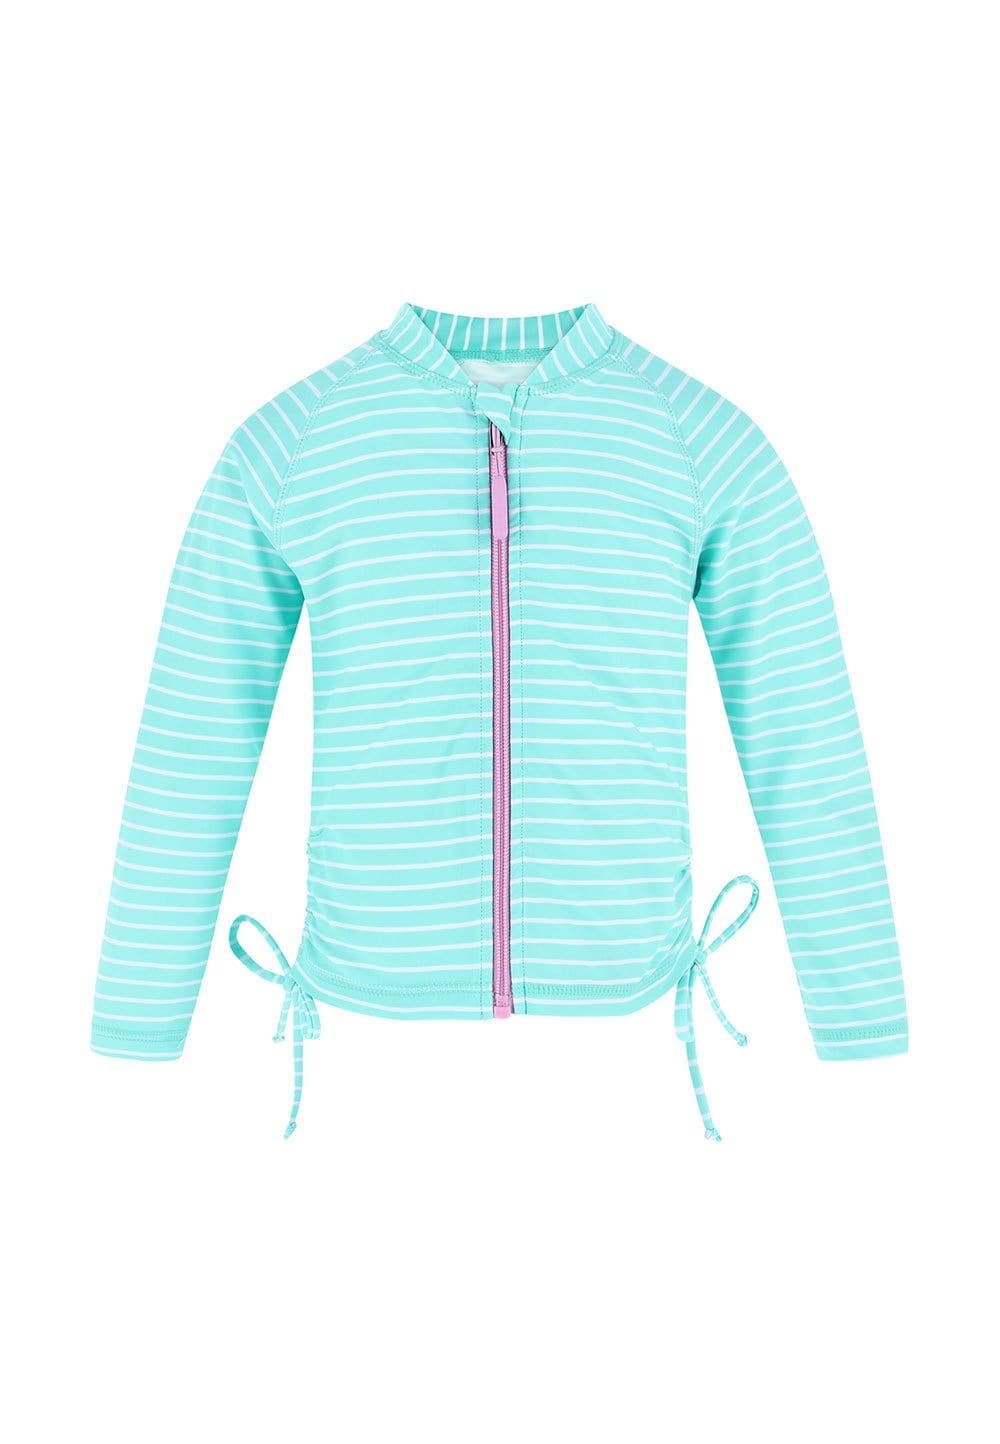 FUNFIT UPF50+ Junior Rash Top (Unisex) in Bubblegum Print